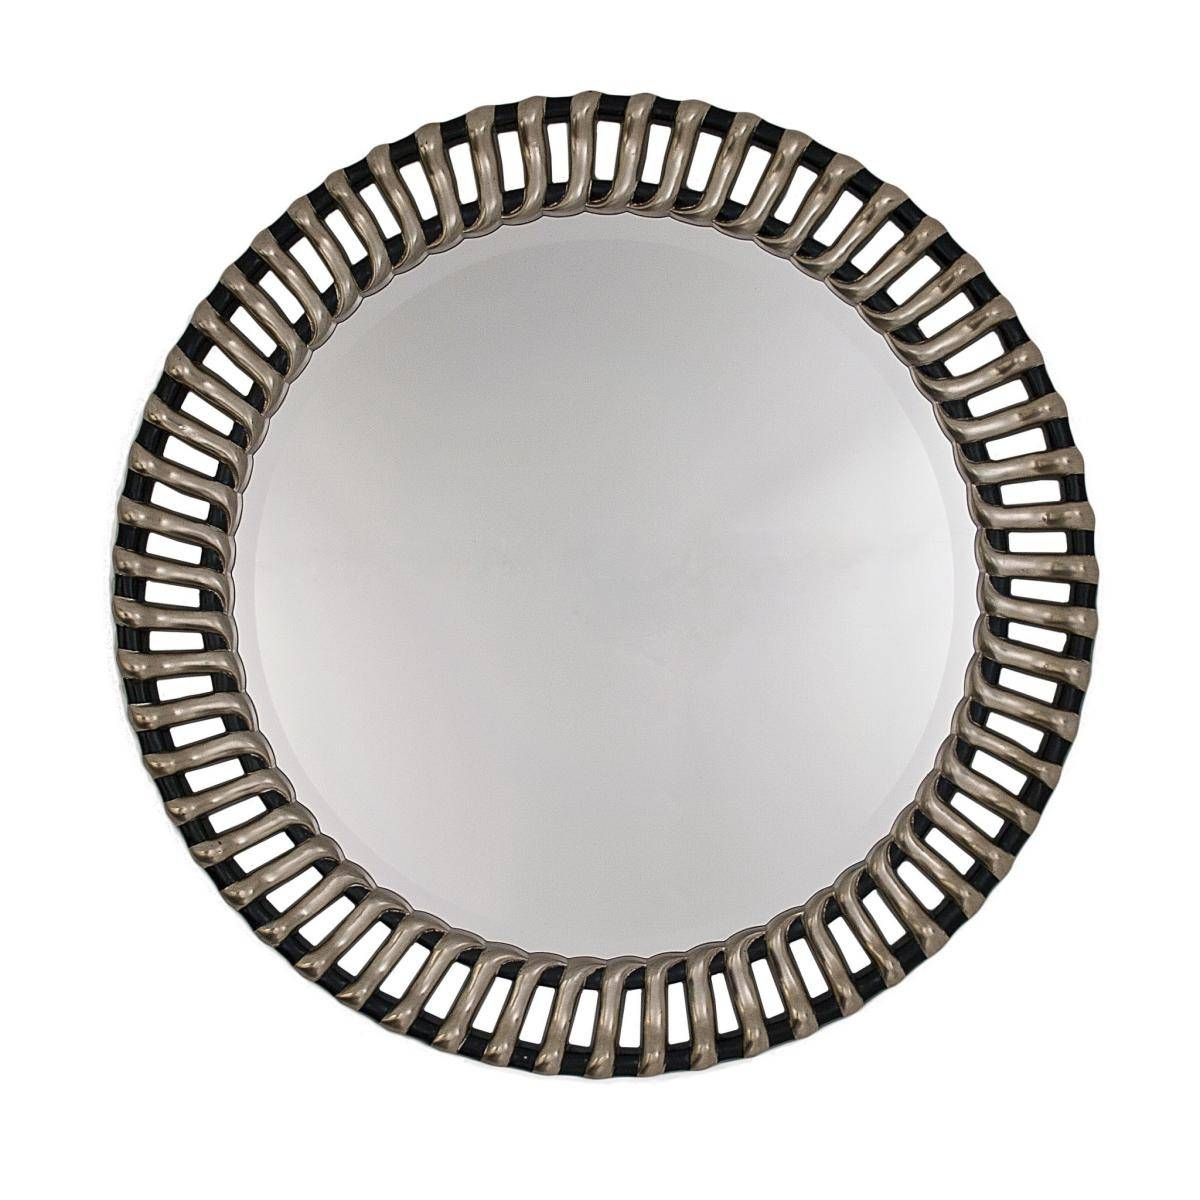 Round Ribbed Framed Silver And Black Bevelled Wall Mirror Regarding Silver Oval Mirrors (View 18 of 25)